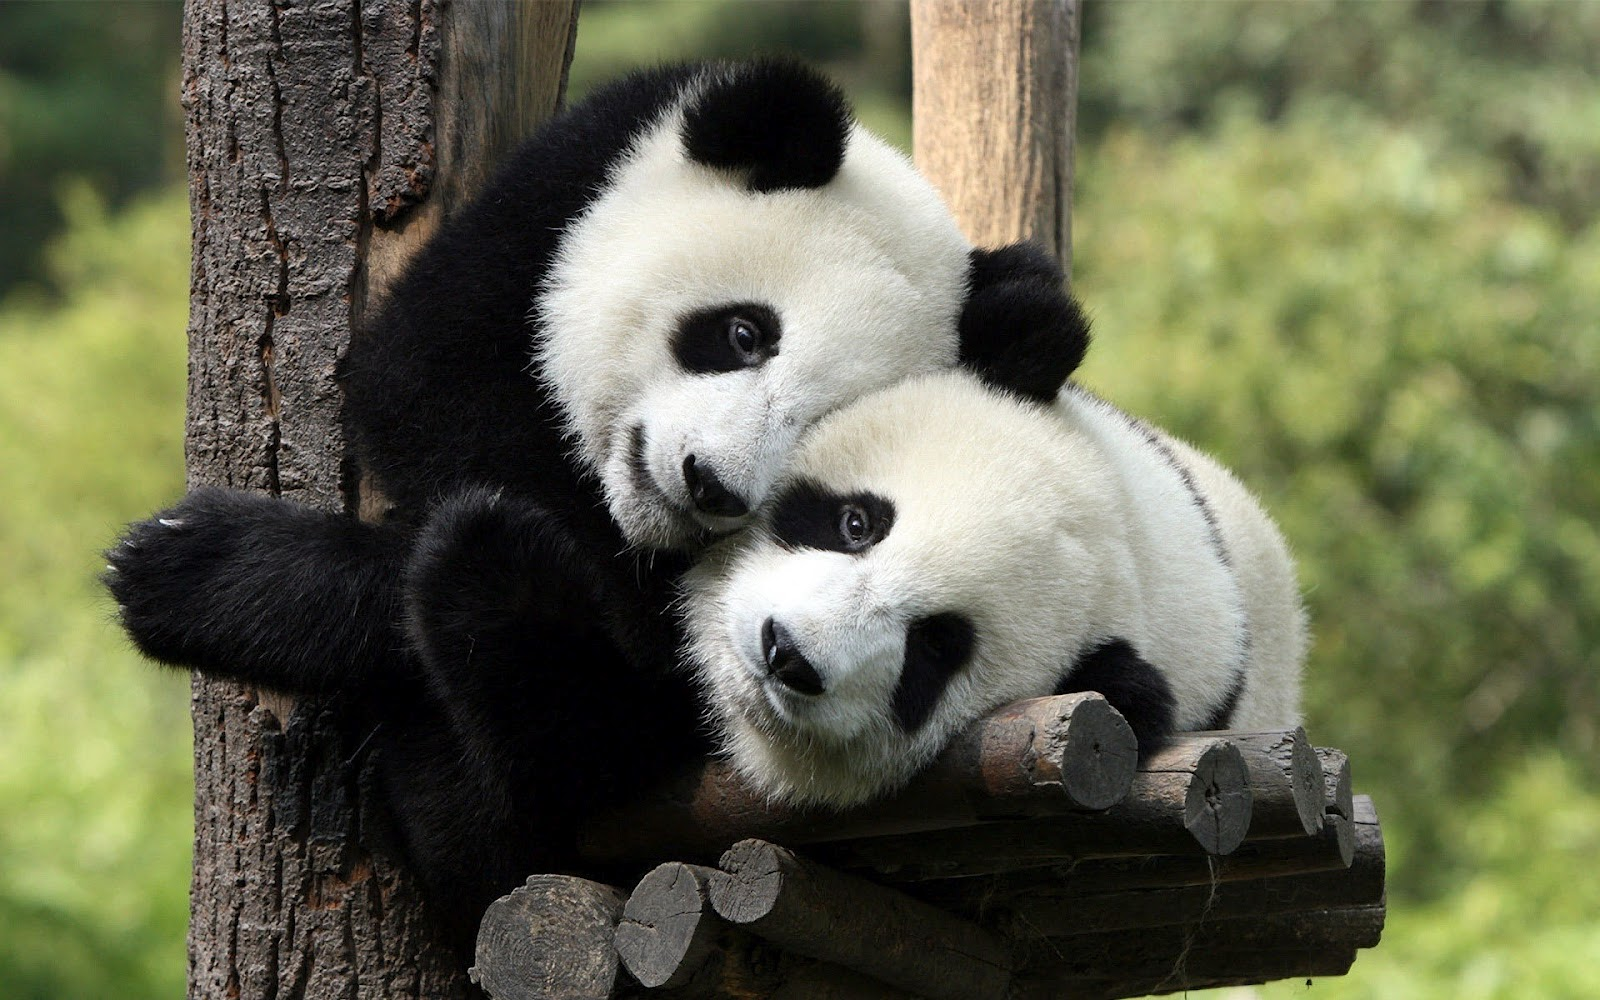 Two panda bears in a tree wallpaper HD Animals Wallpapers 1600x1000